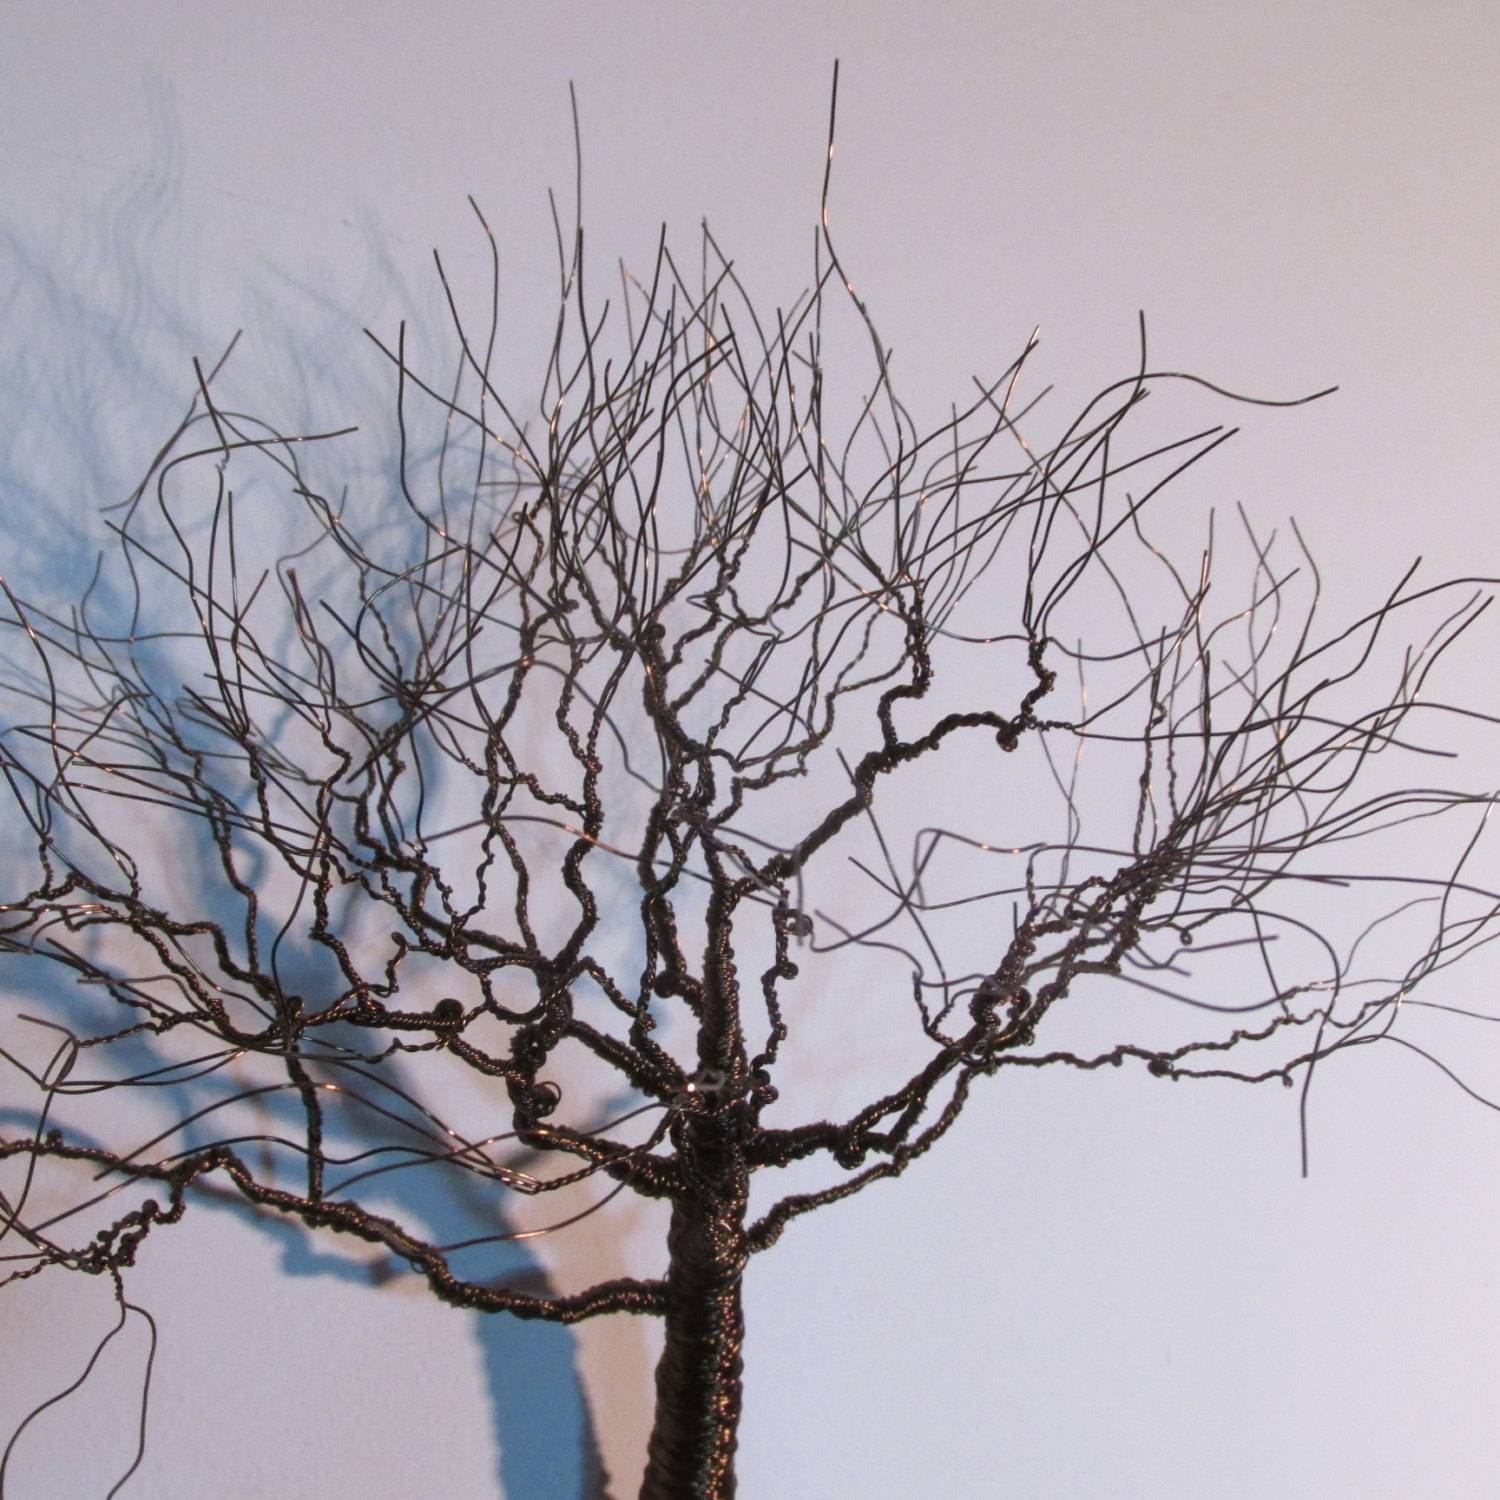 Wall Art Decor Ideas: Bronze Decorations Metal Wall Art Tree Brown For Best And Newest Metal Wall Art Trees And Branches (View 9 of 18)